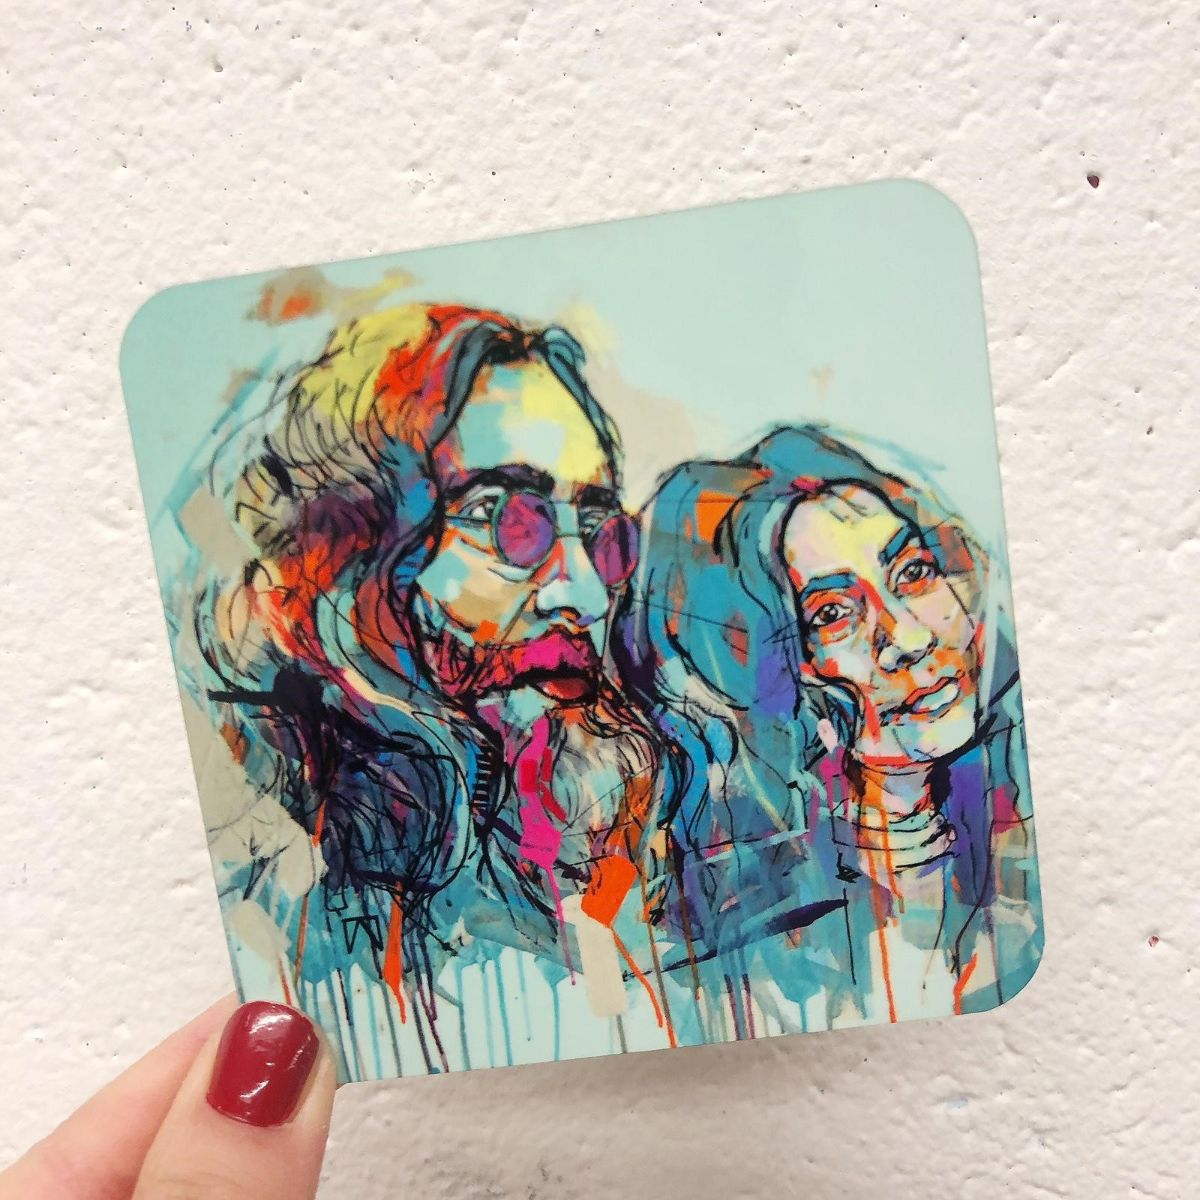 John Lennon artwork - design your own coaster